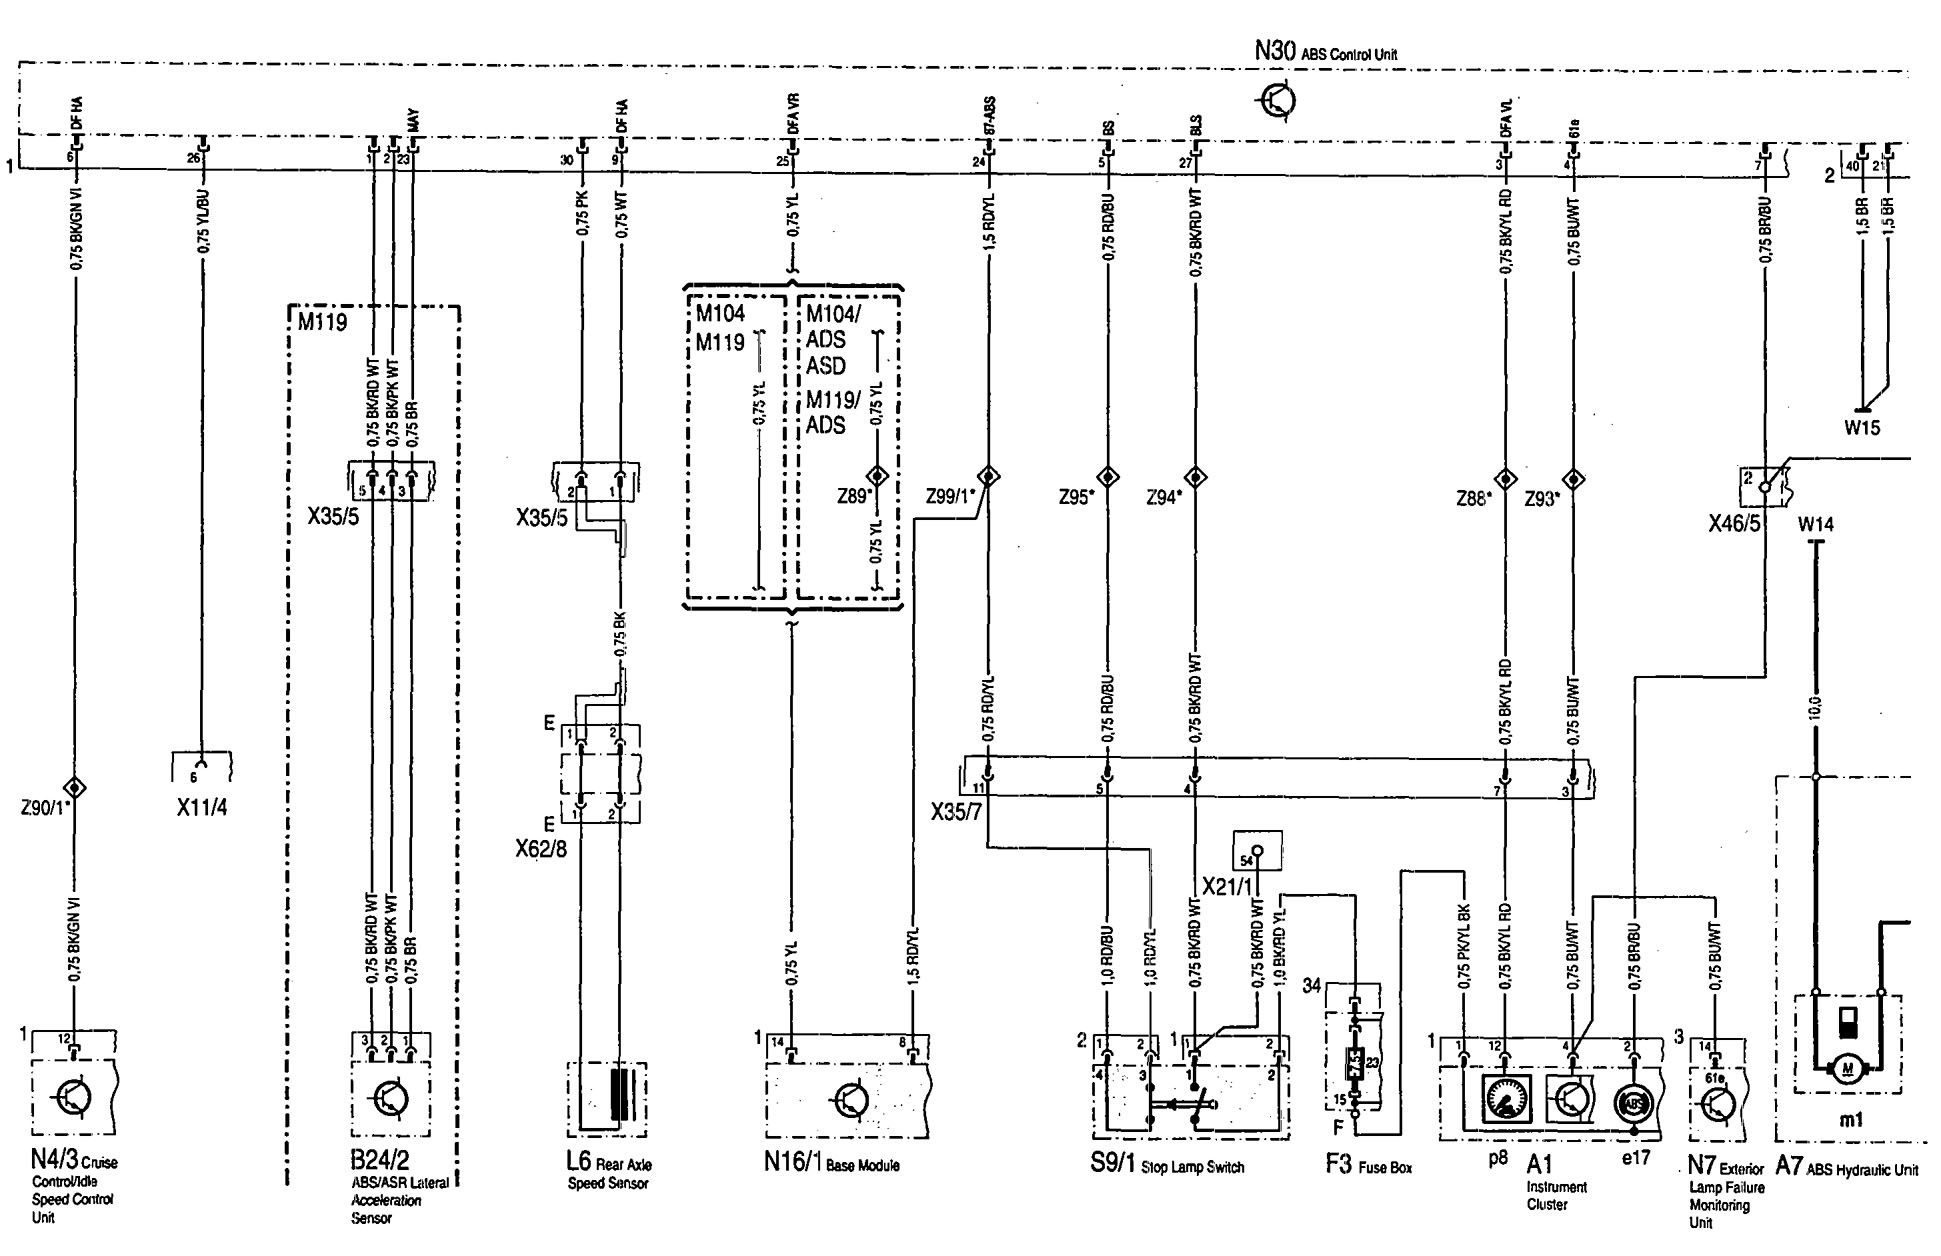 citroen c4 abs wiring diagram wiring library Citroen C3 Manual mercedes benz 300se wiring diagram abs (part 1)